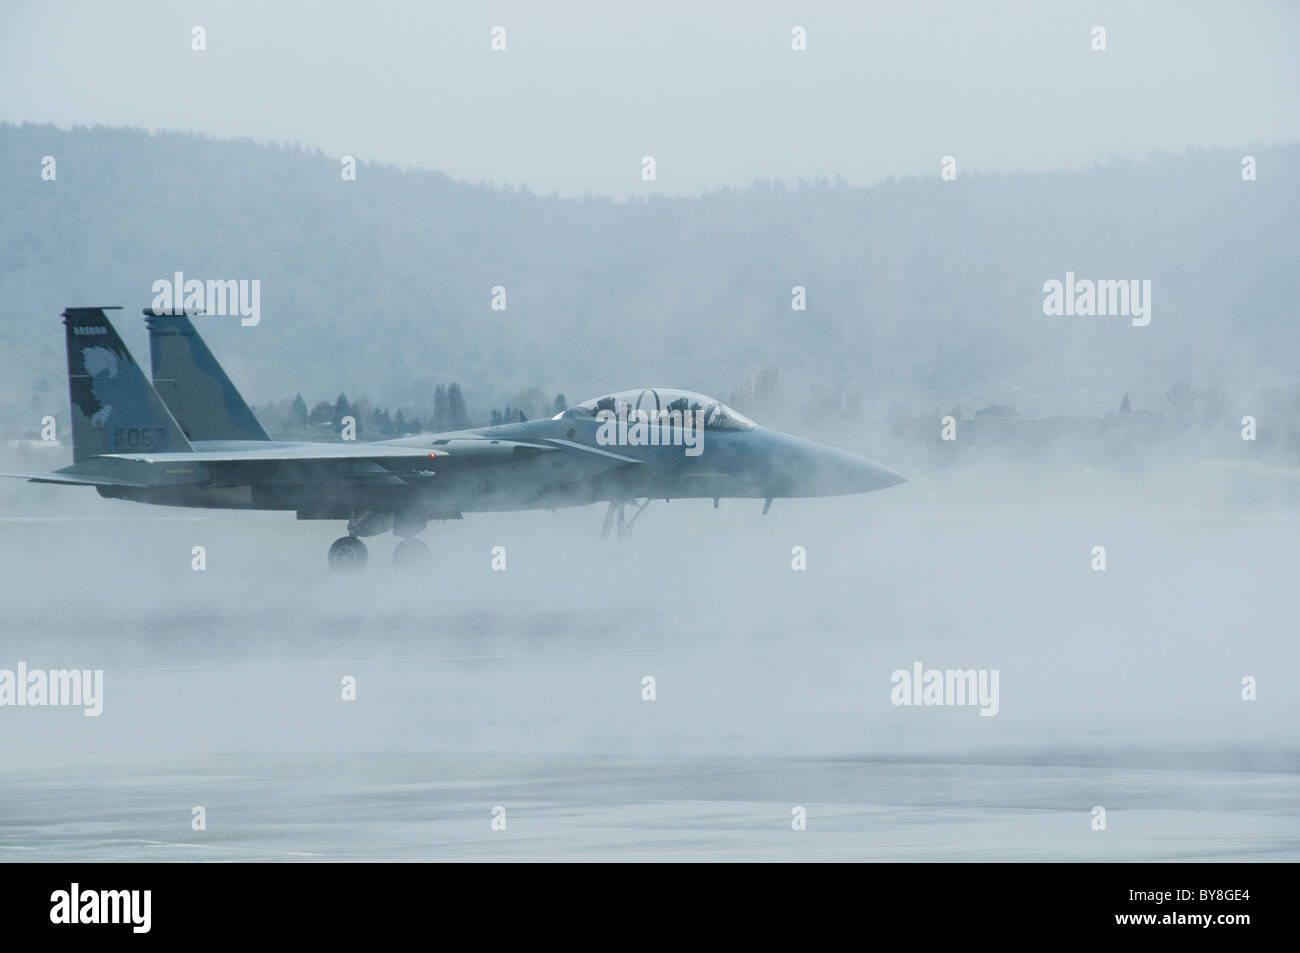 Jet fighter on runway with fog - Stock Image